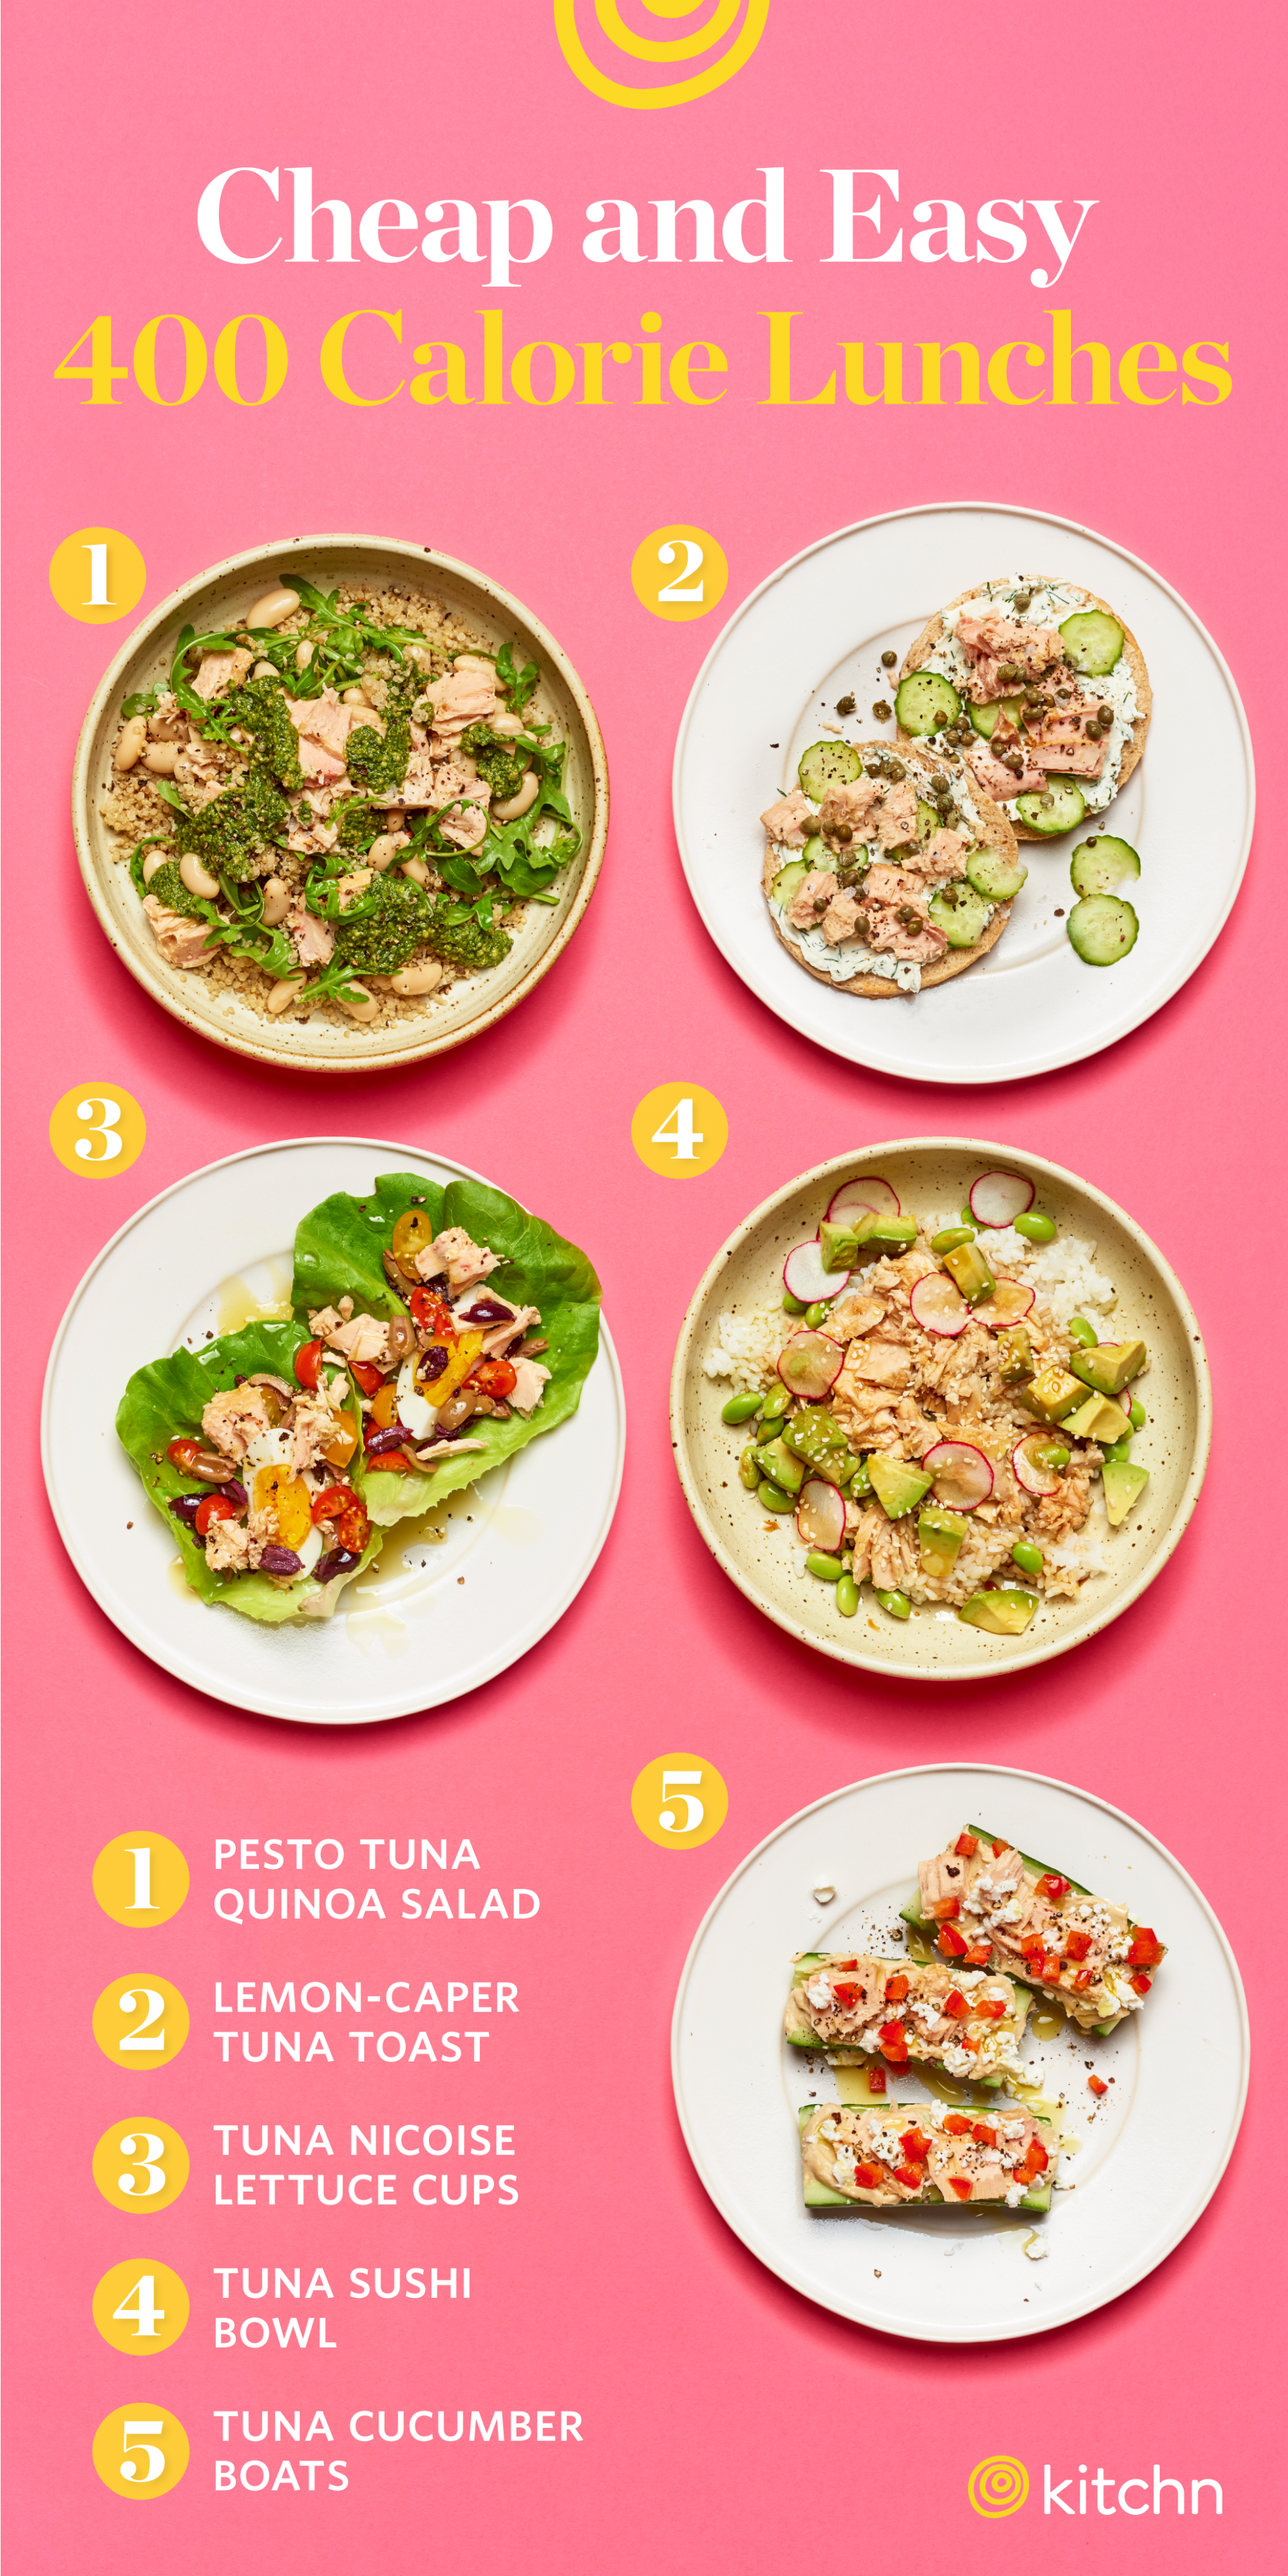 Easy and Healthy Tuna Lunch Ideas | Kitchn